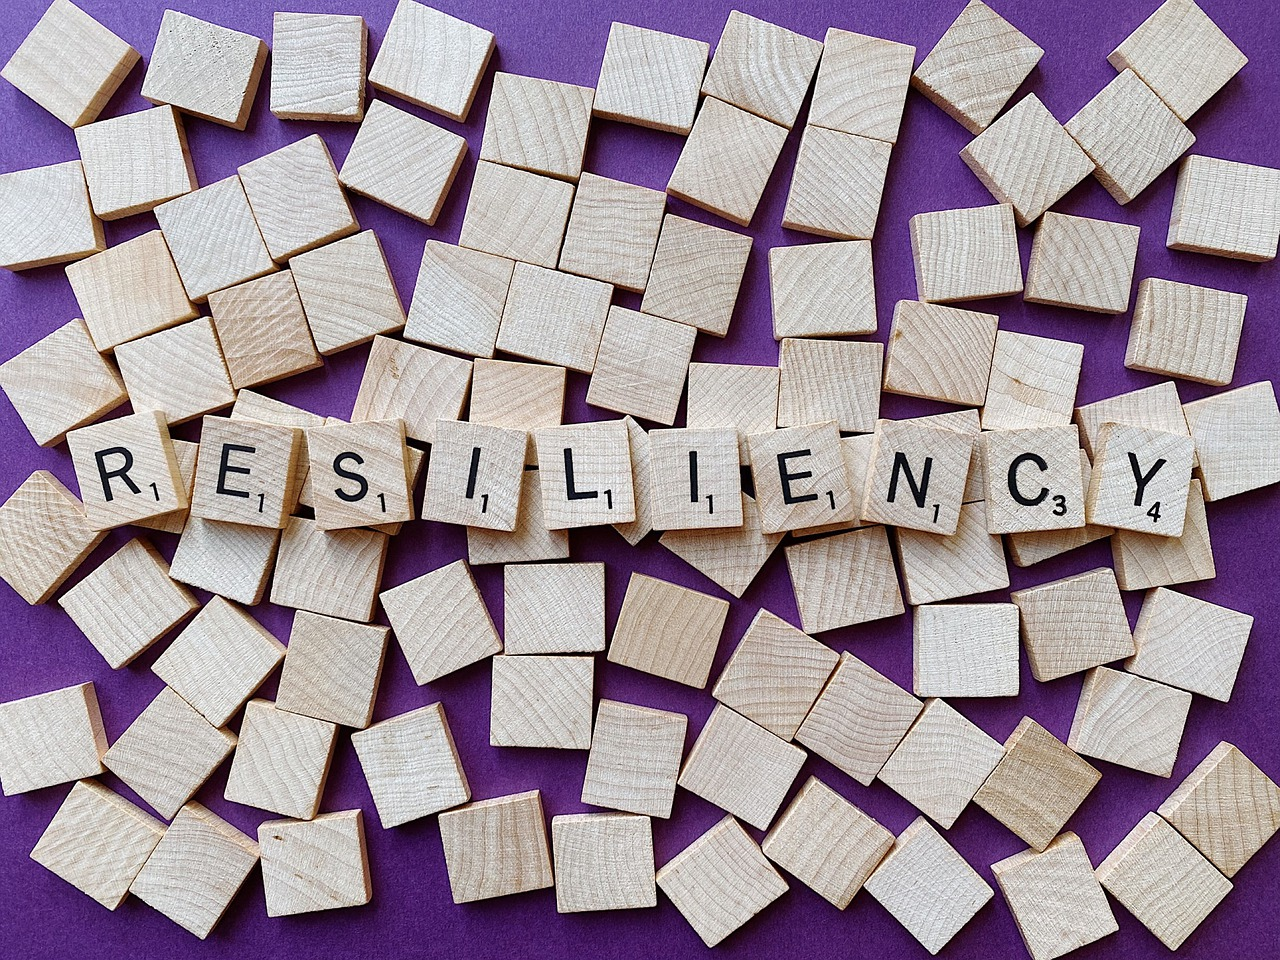 Resilient Resiliency Resilience - Free photo on Pixabay